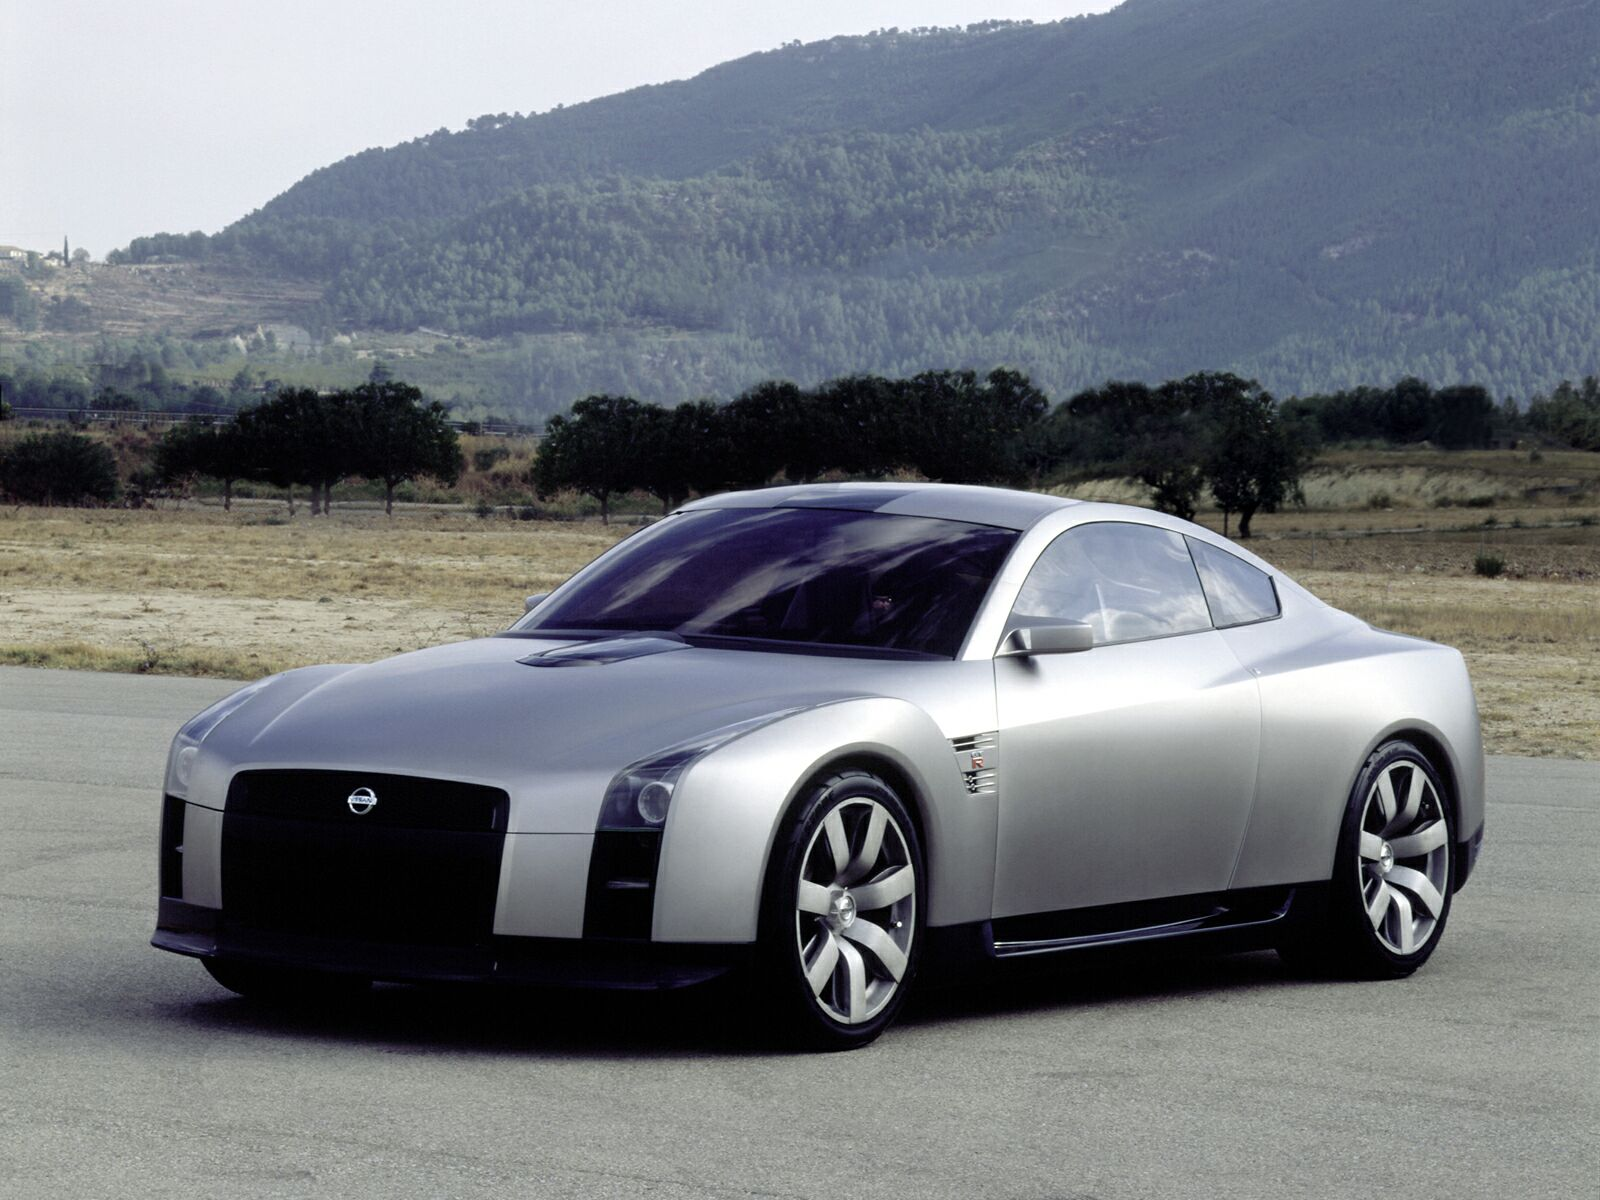 Nissan GT-R Proto Concept (2001) – Old Concept Cars